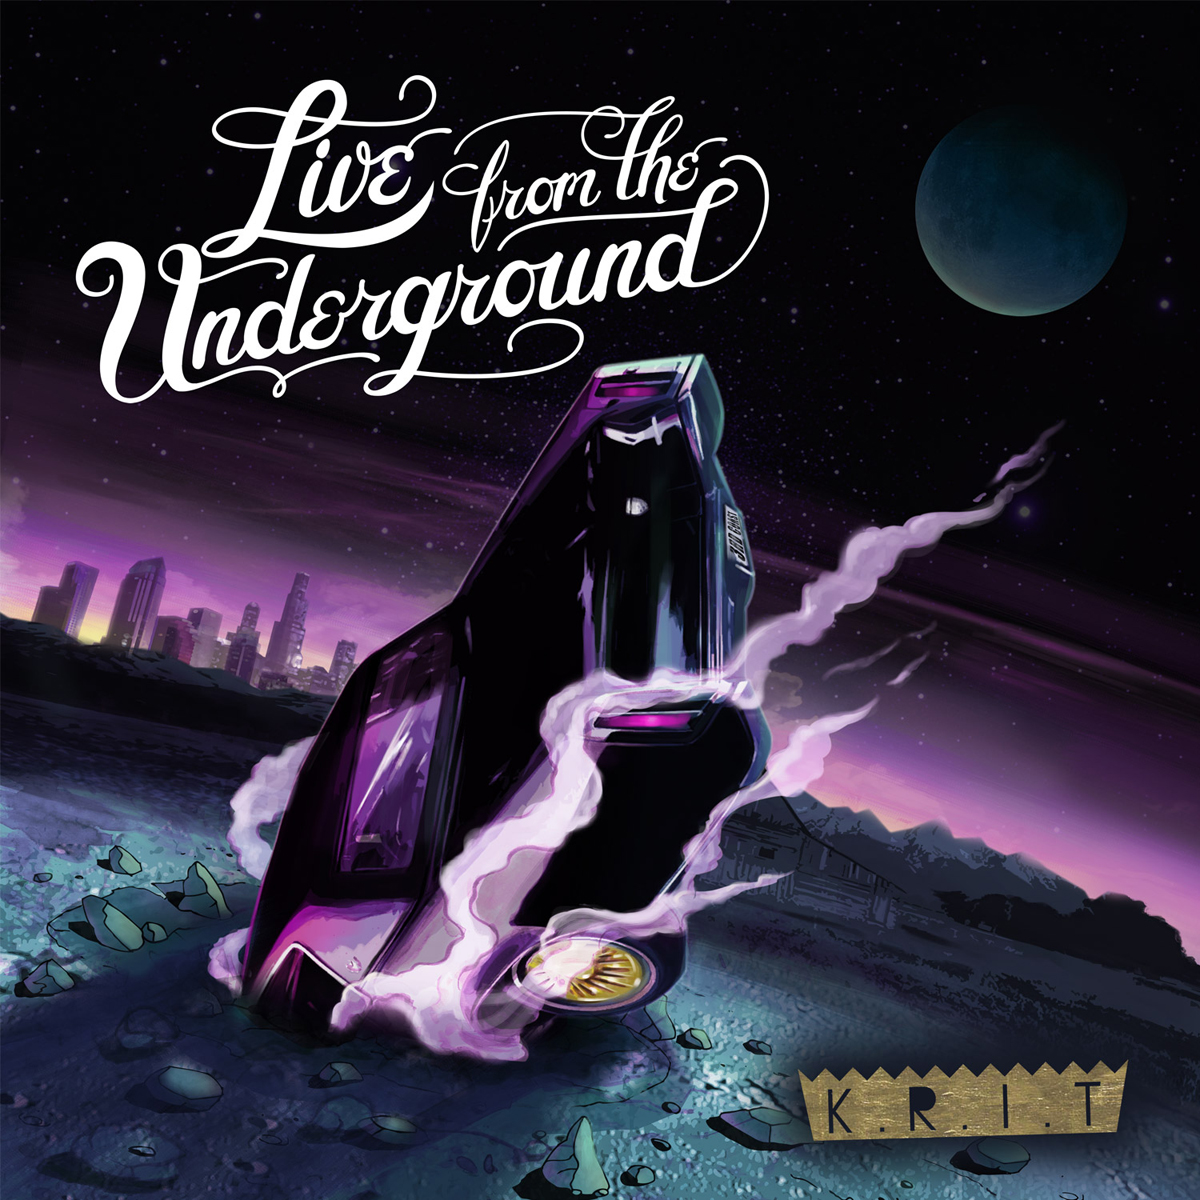 KRIT_Live_form_the_underground